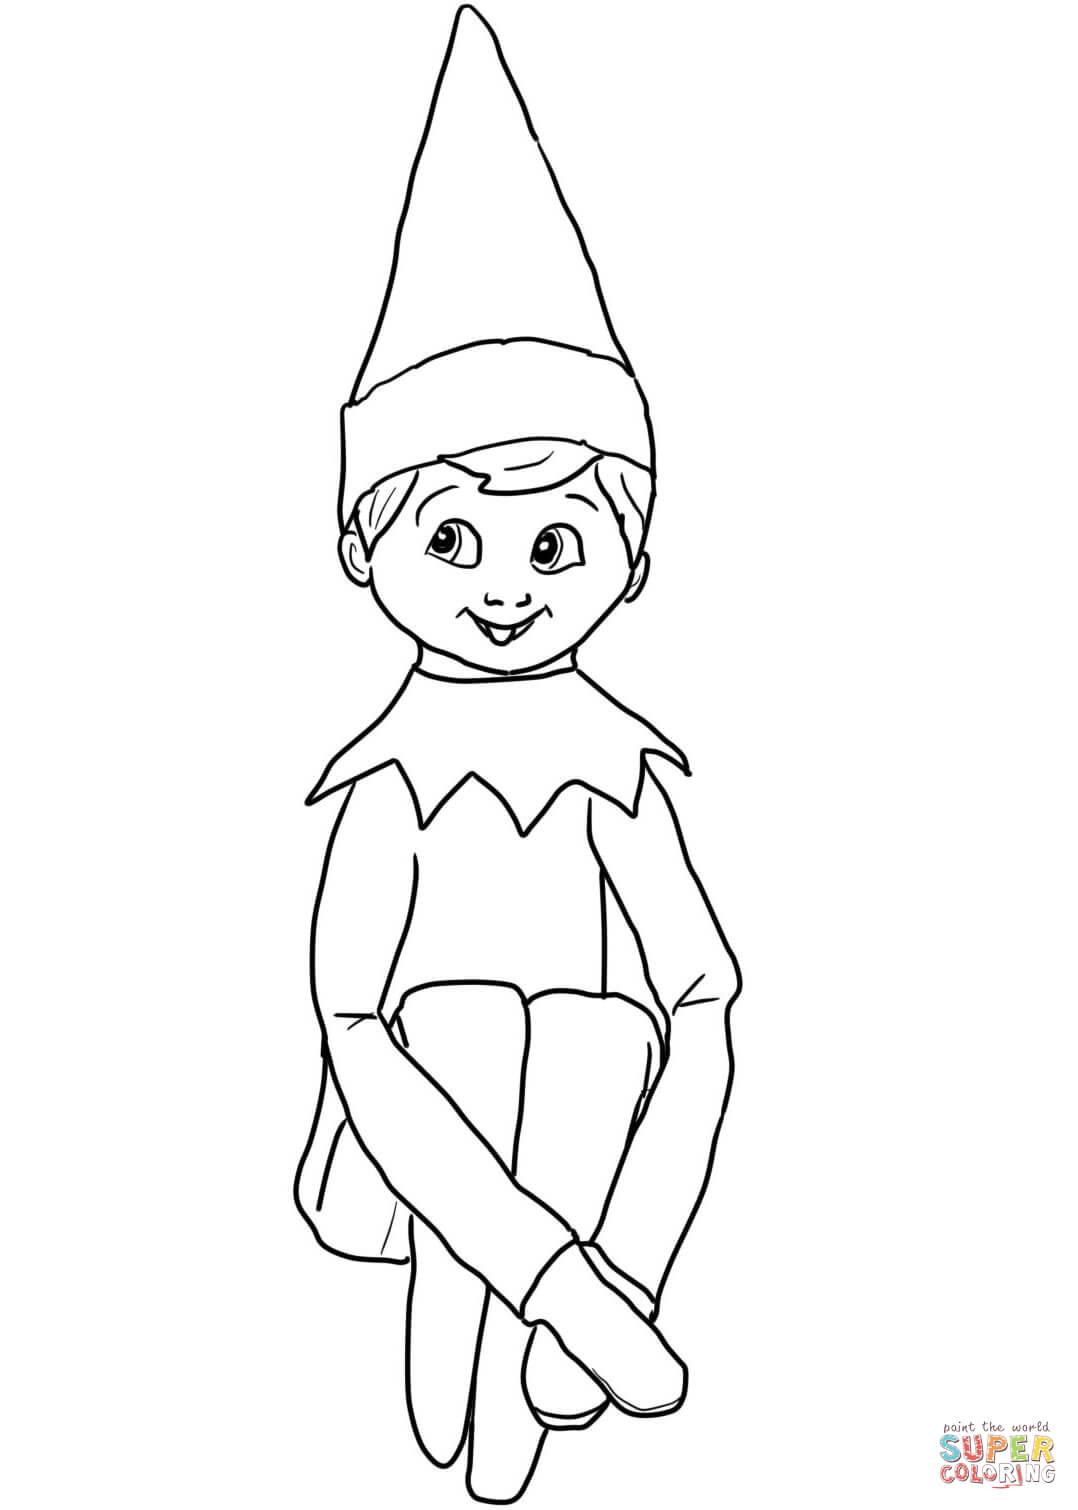 Christmas Elves Coloring Pages To Print With Elf On Shelf Page Free Printable